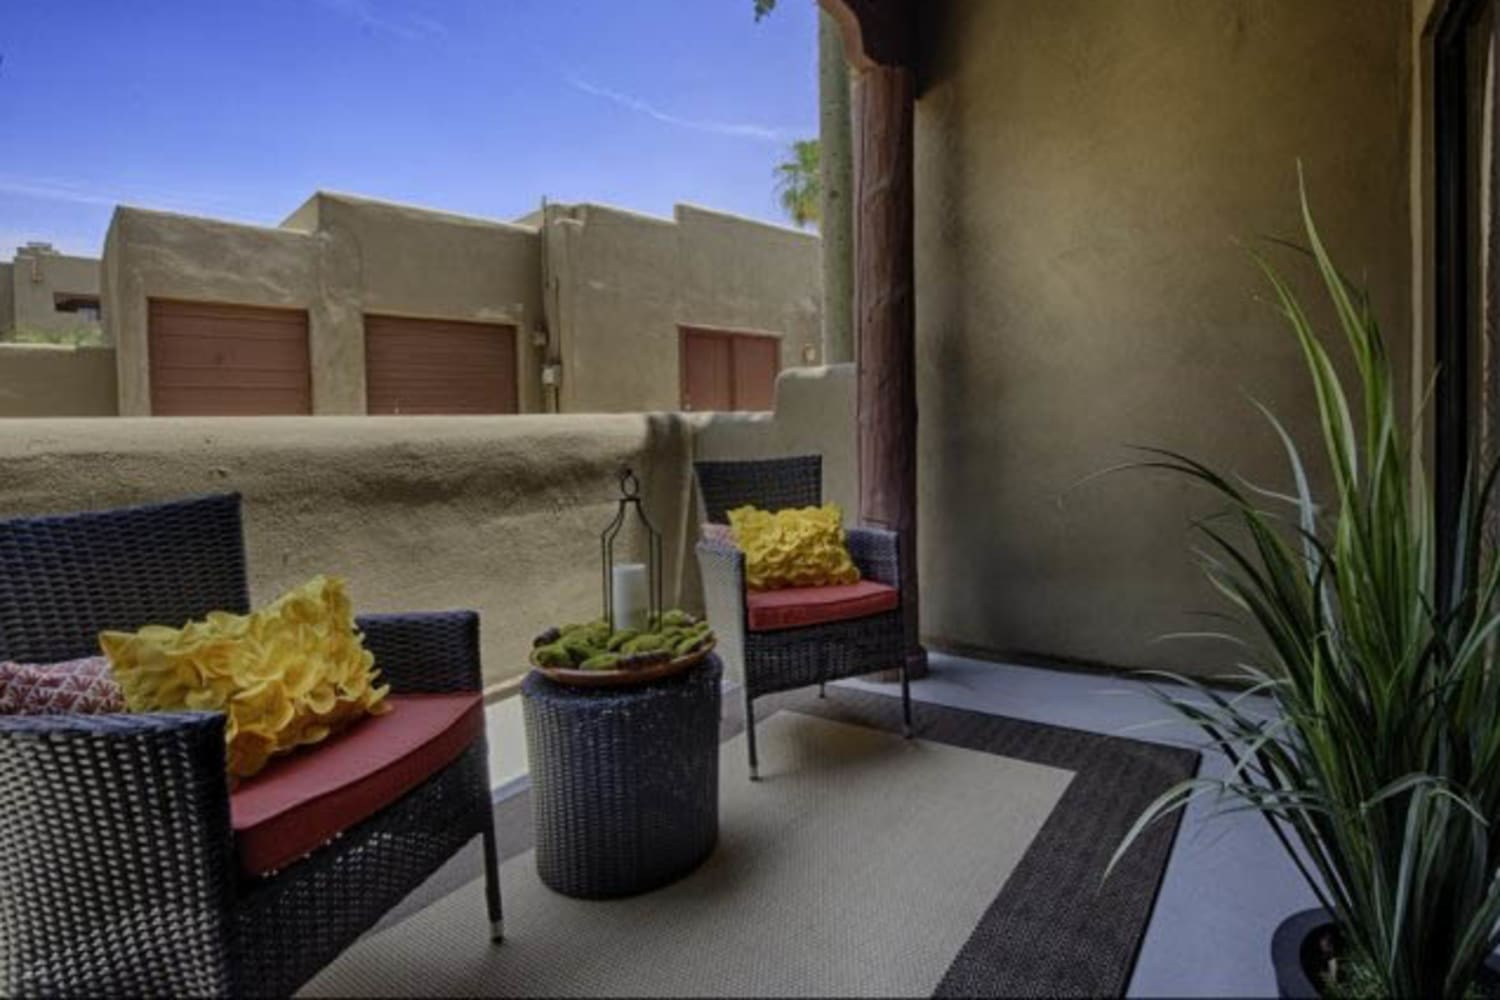 Balcony at Casa Santa Fe Apartments in Scottsdale, Arizona